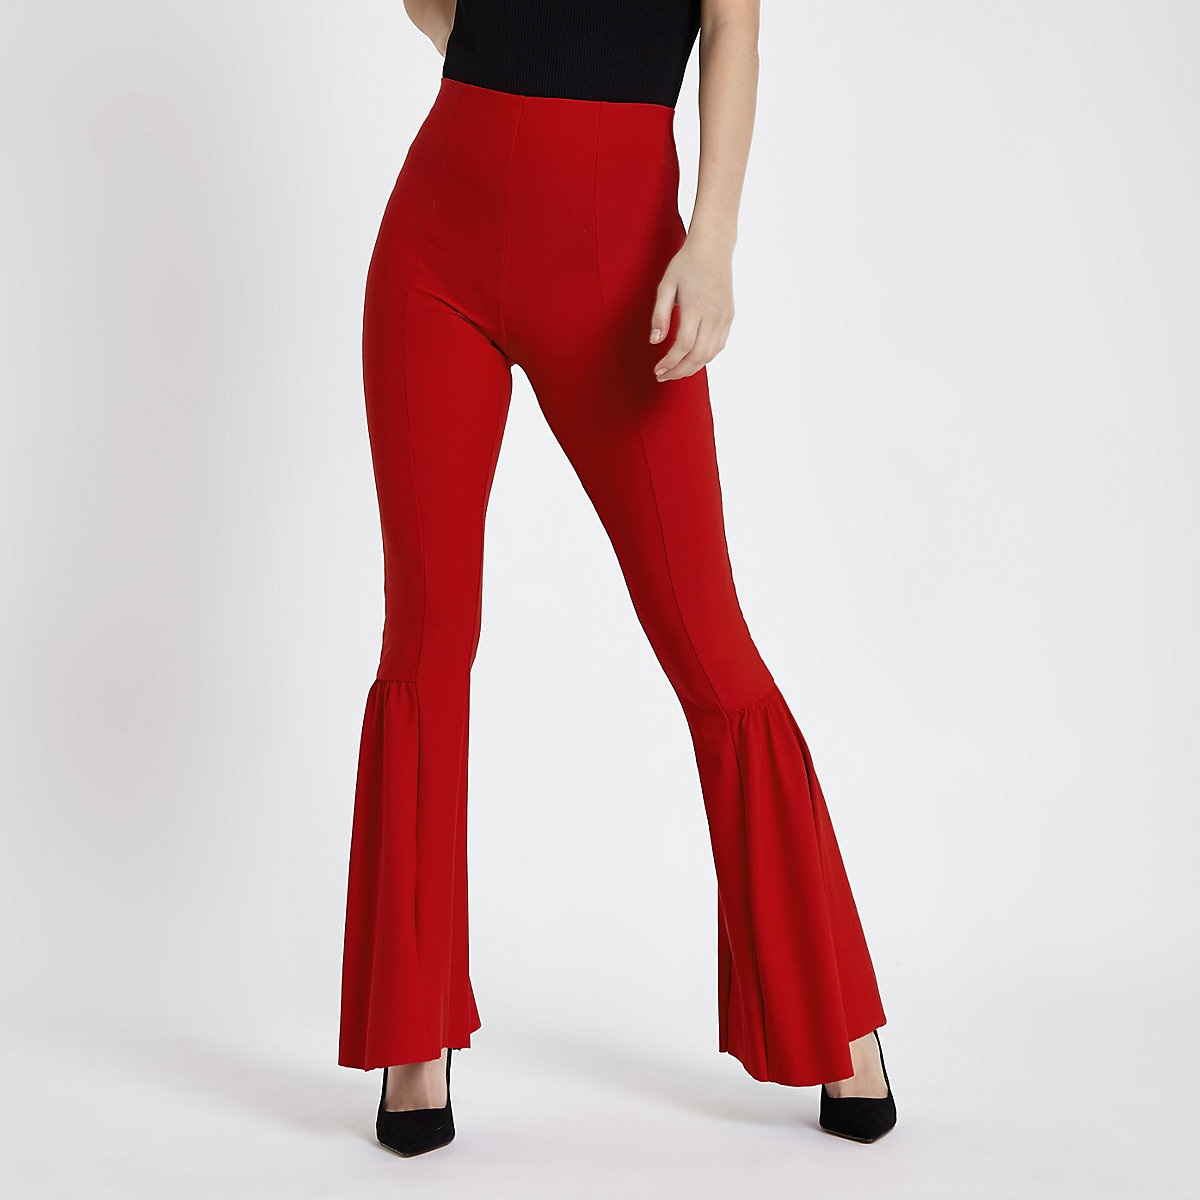 Red frill flare trousers